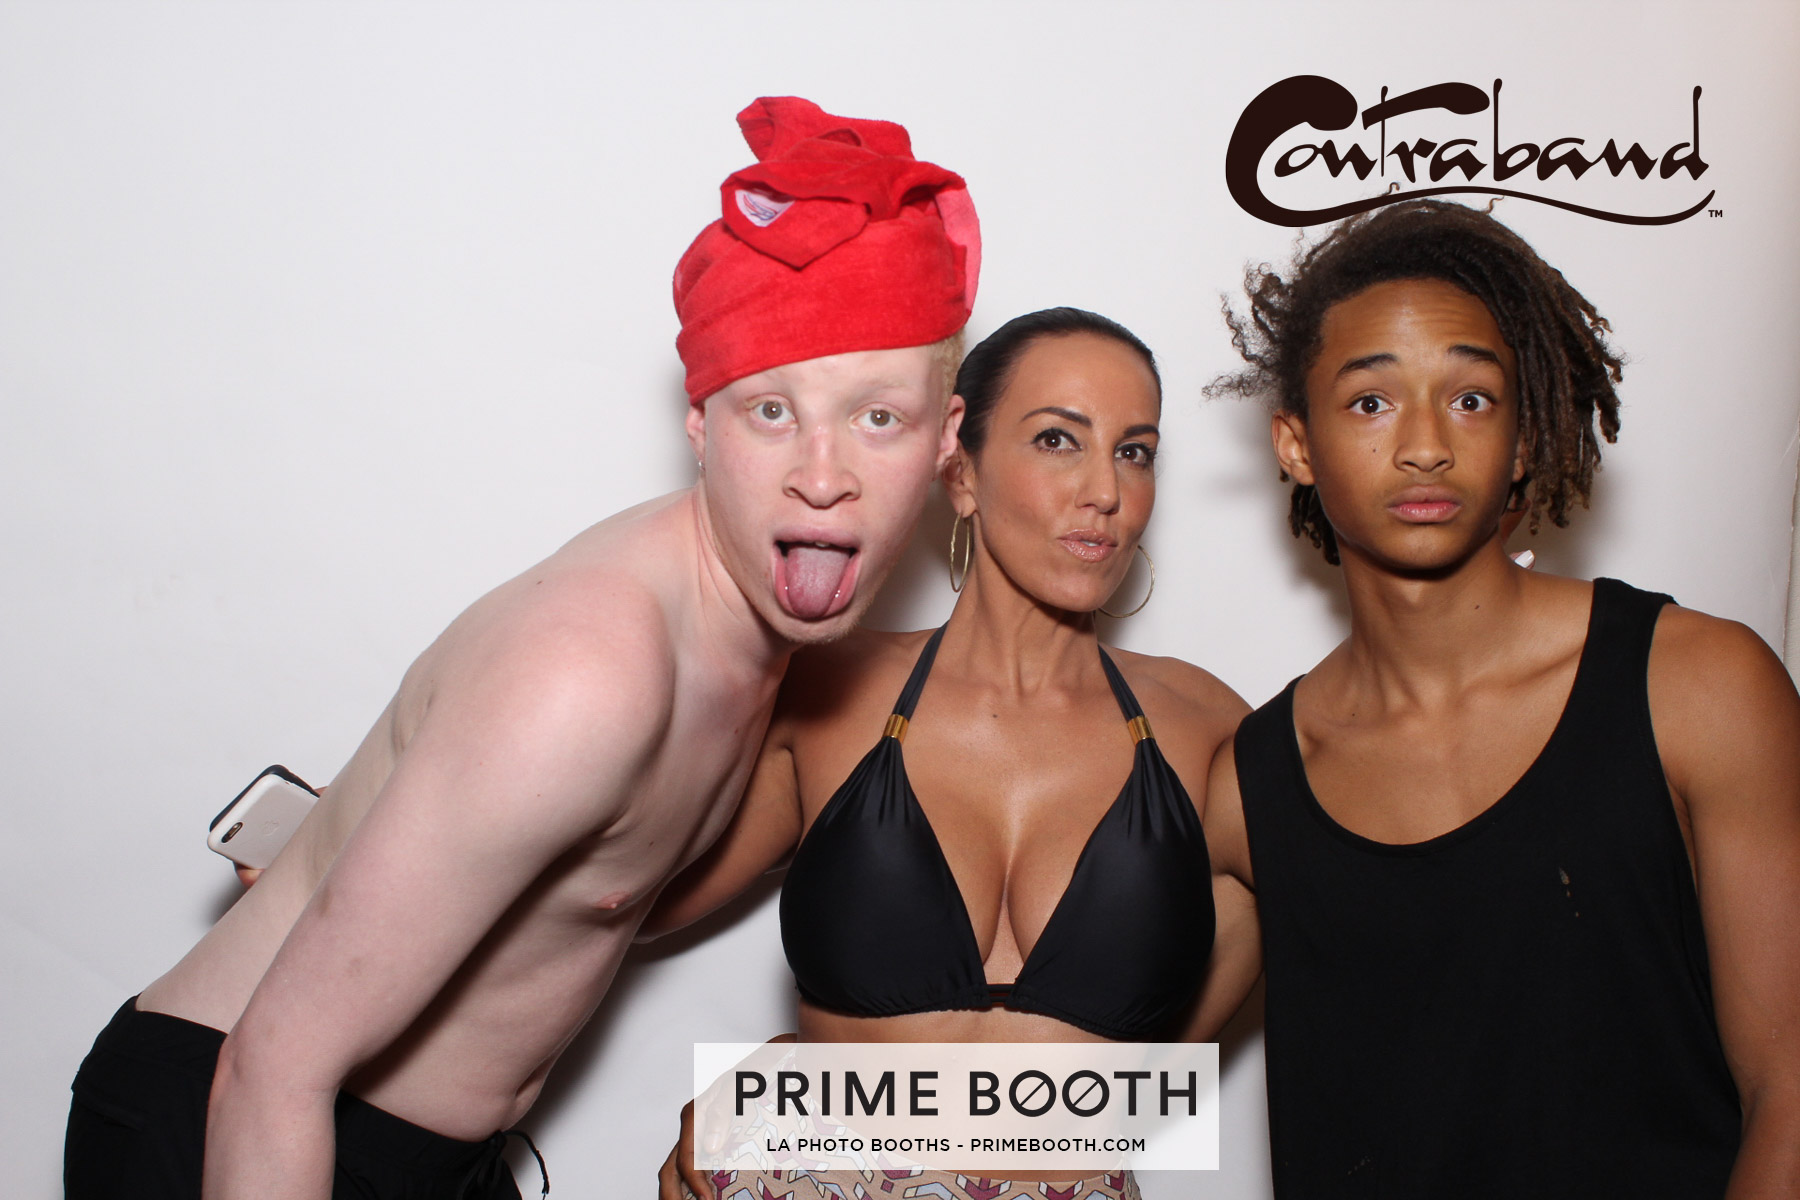 contraband-hats-celebrity-prime-booth-505